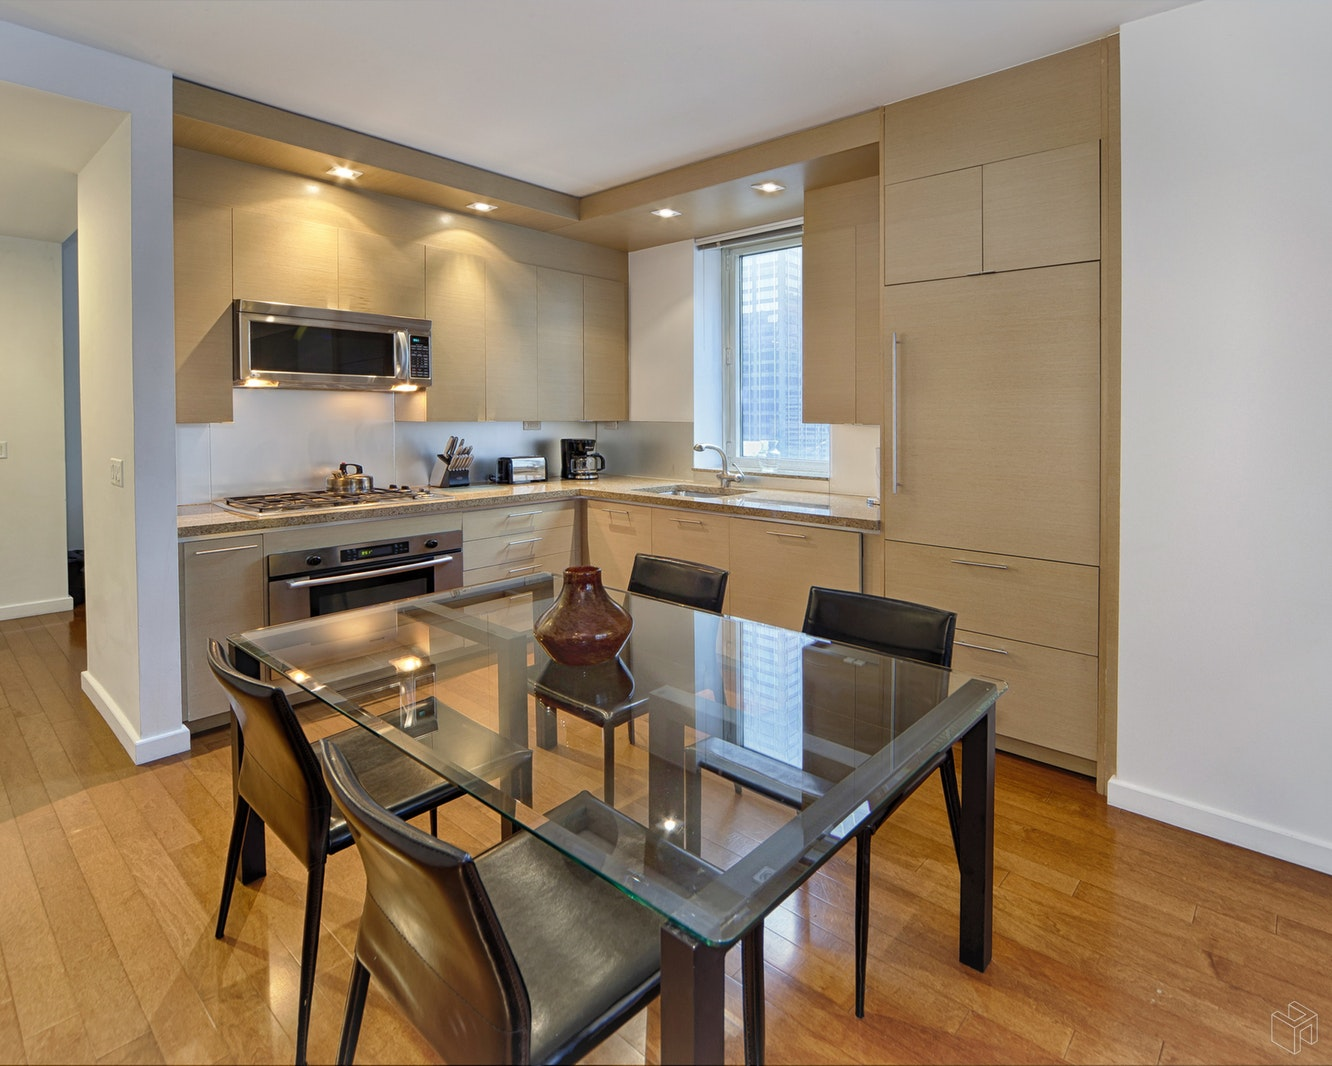 1600 BROADWAY 15AA, Midtown West, $1,150,000, Web #: 15192853